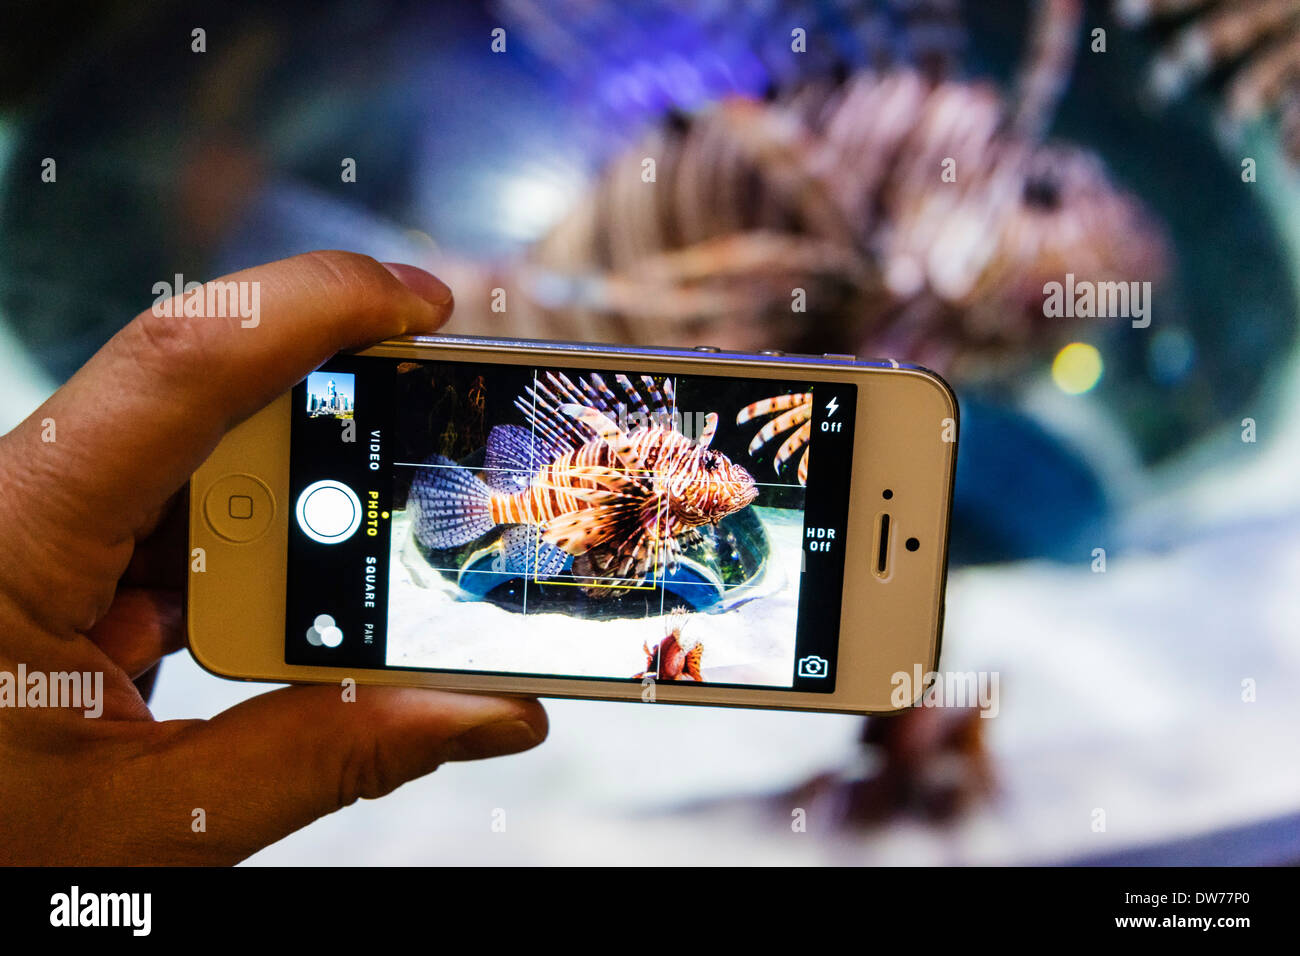 Photographing a Lionfish with camera phone at Underwater Zoo aquarium at Dubai Mall in United Arab Emirates - Stock Image